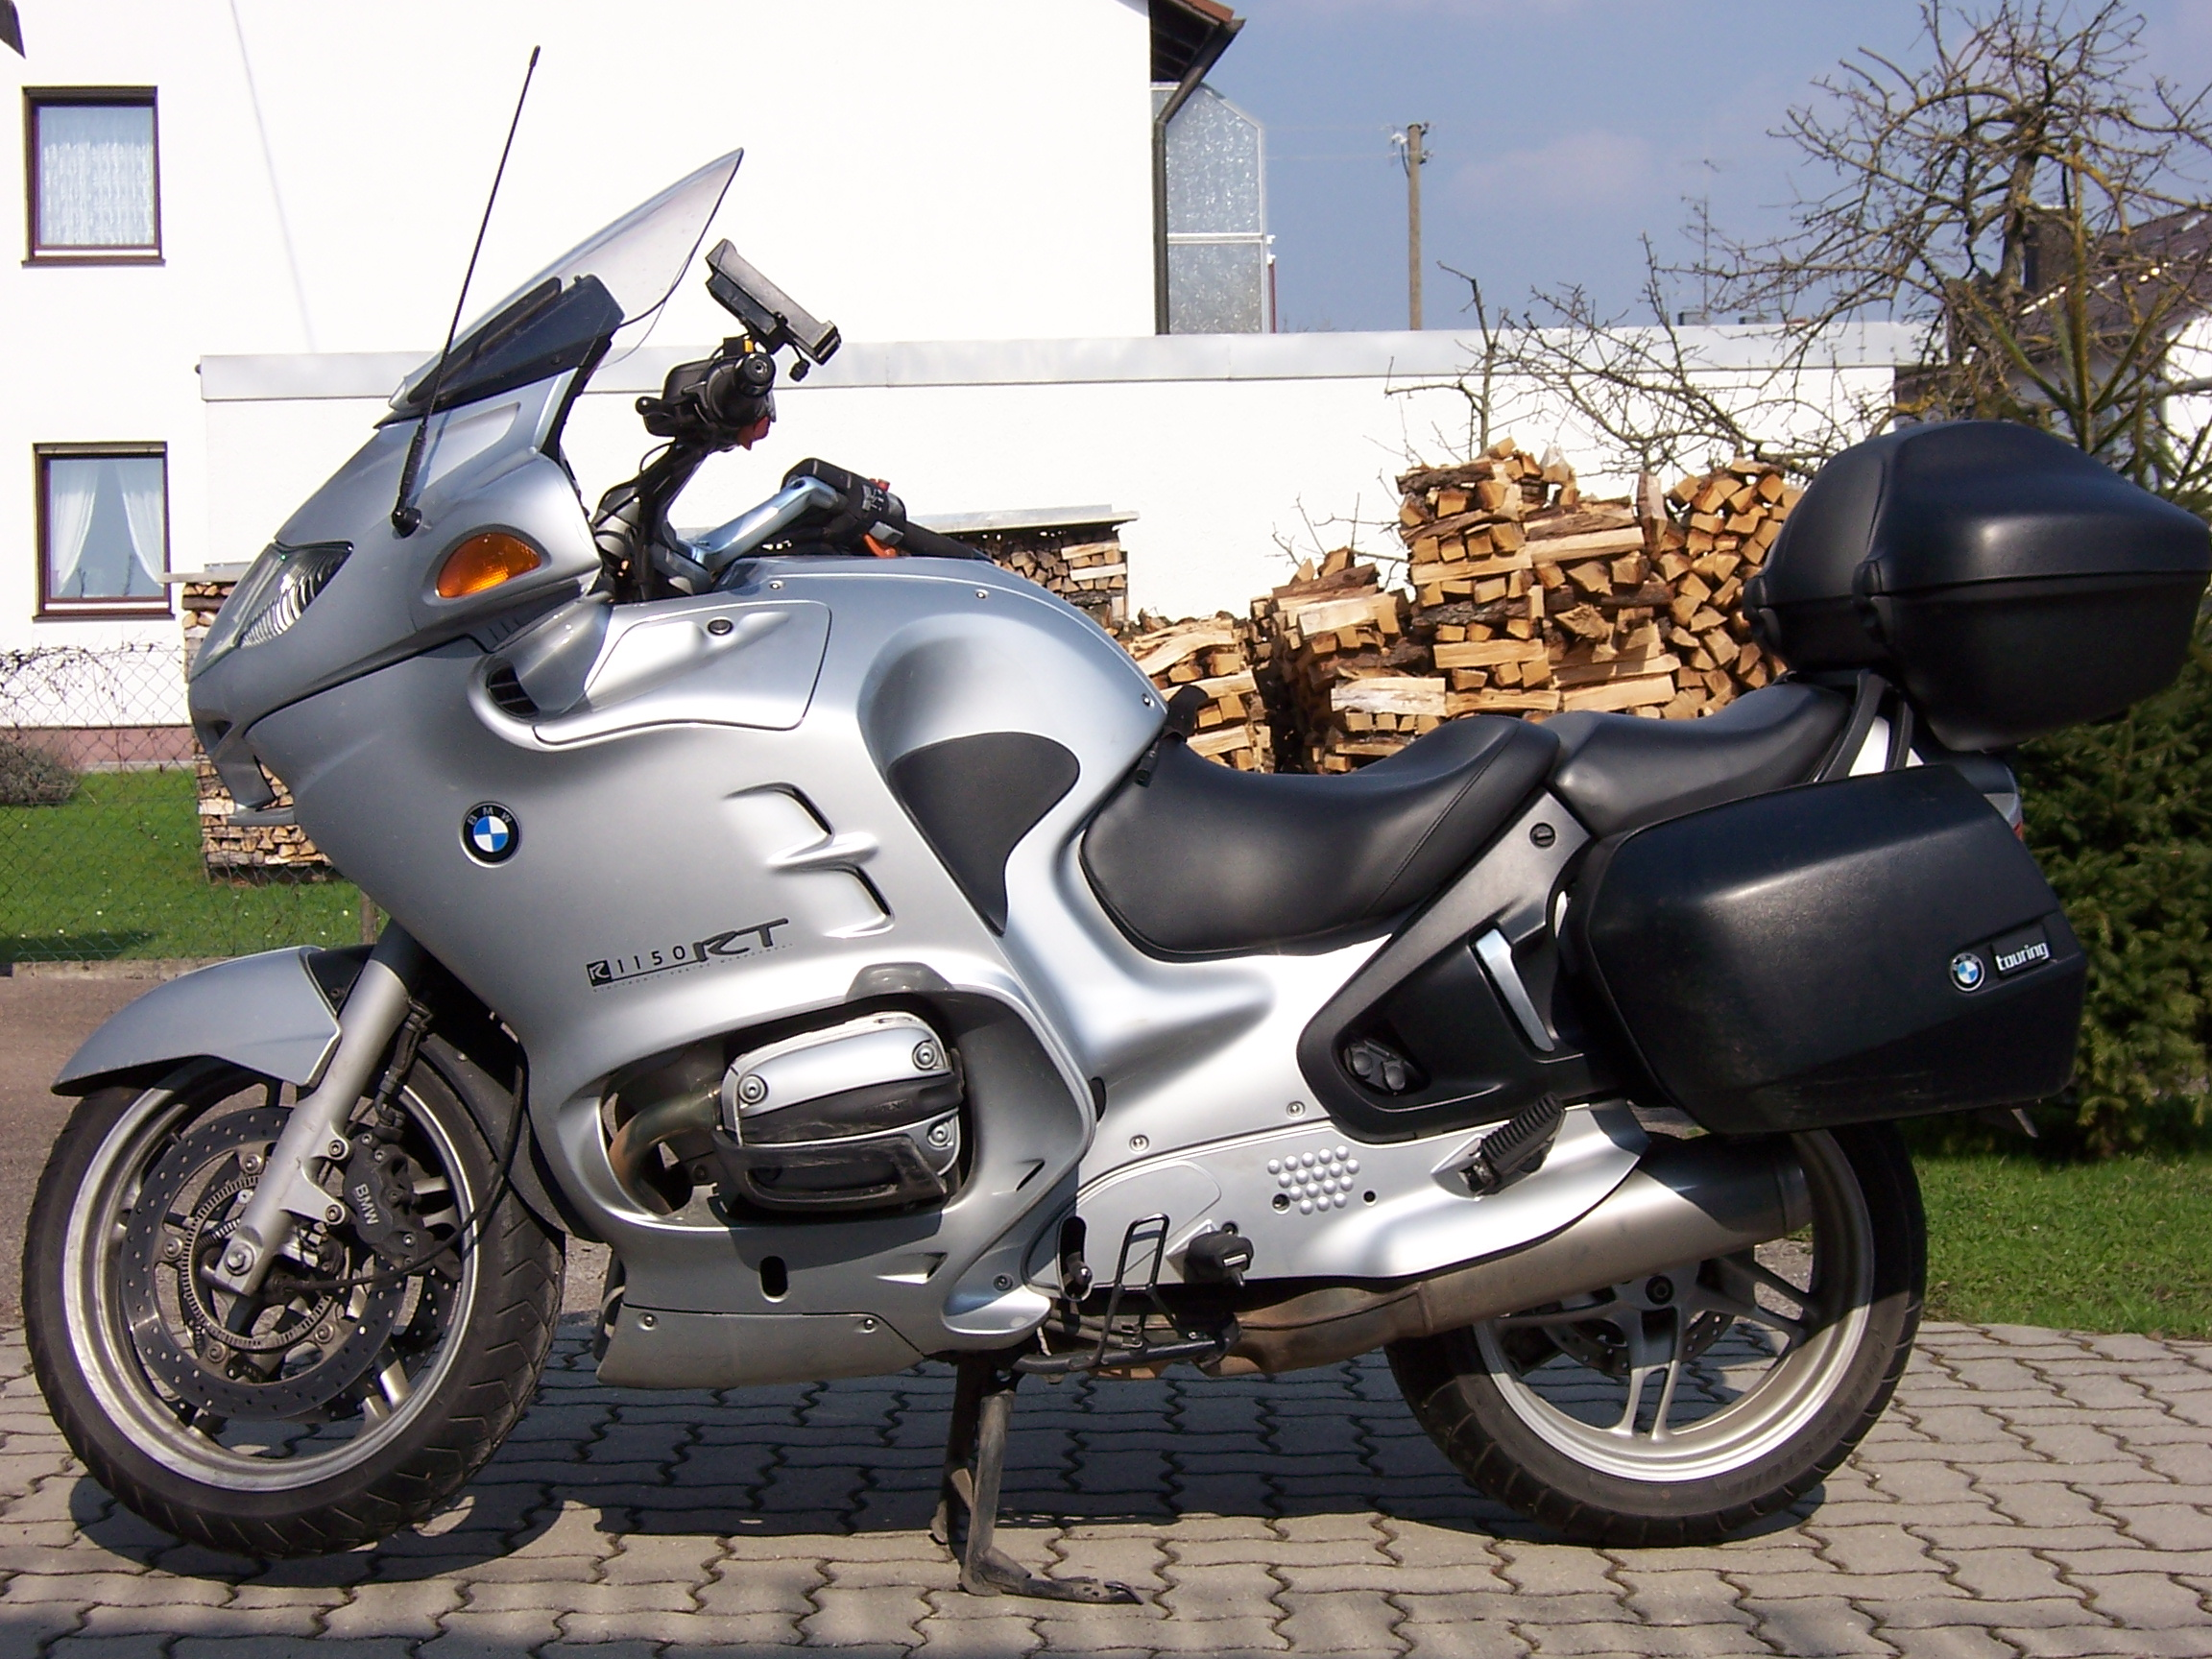 BMW R1150RT images #28433